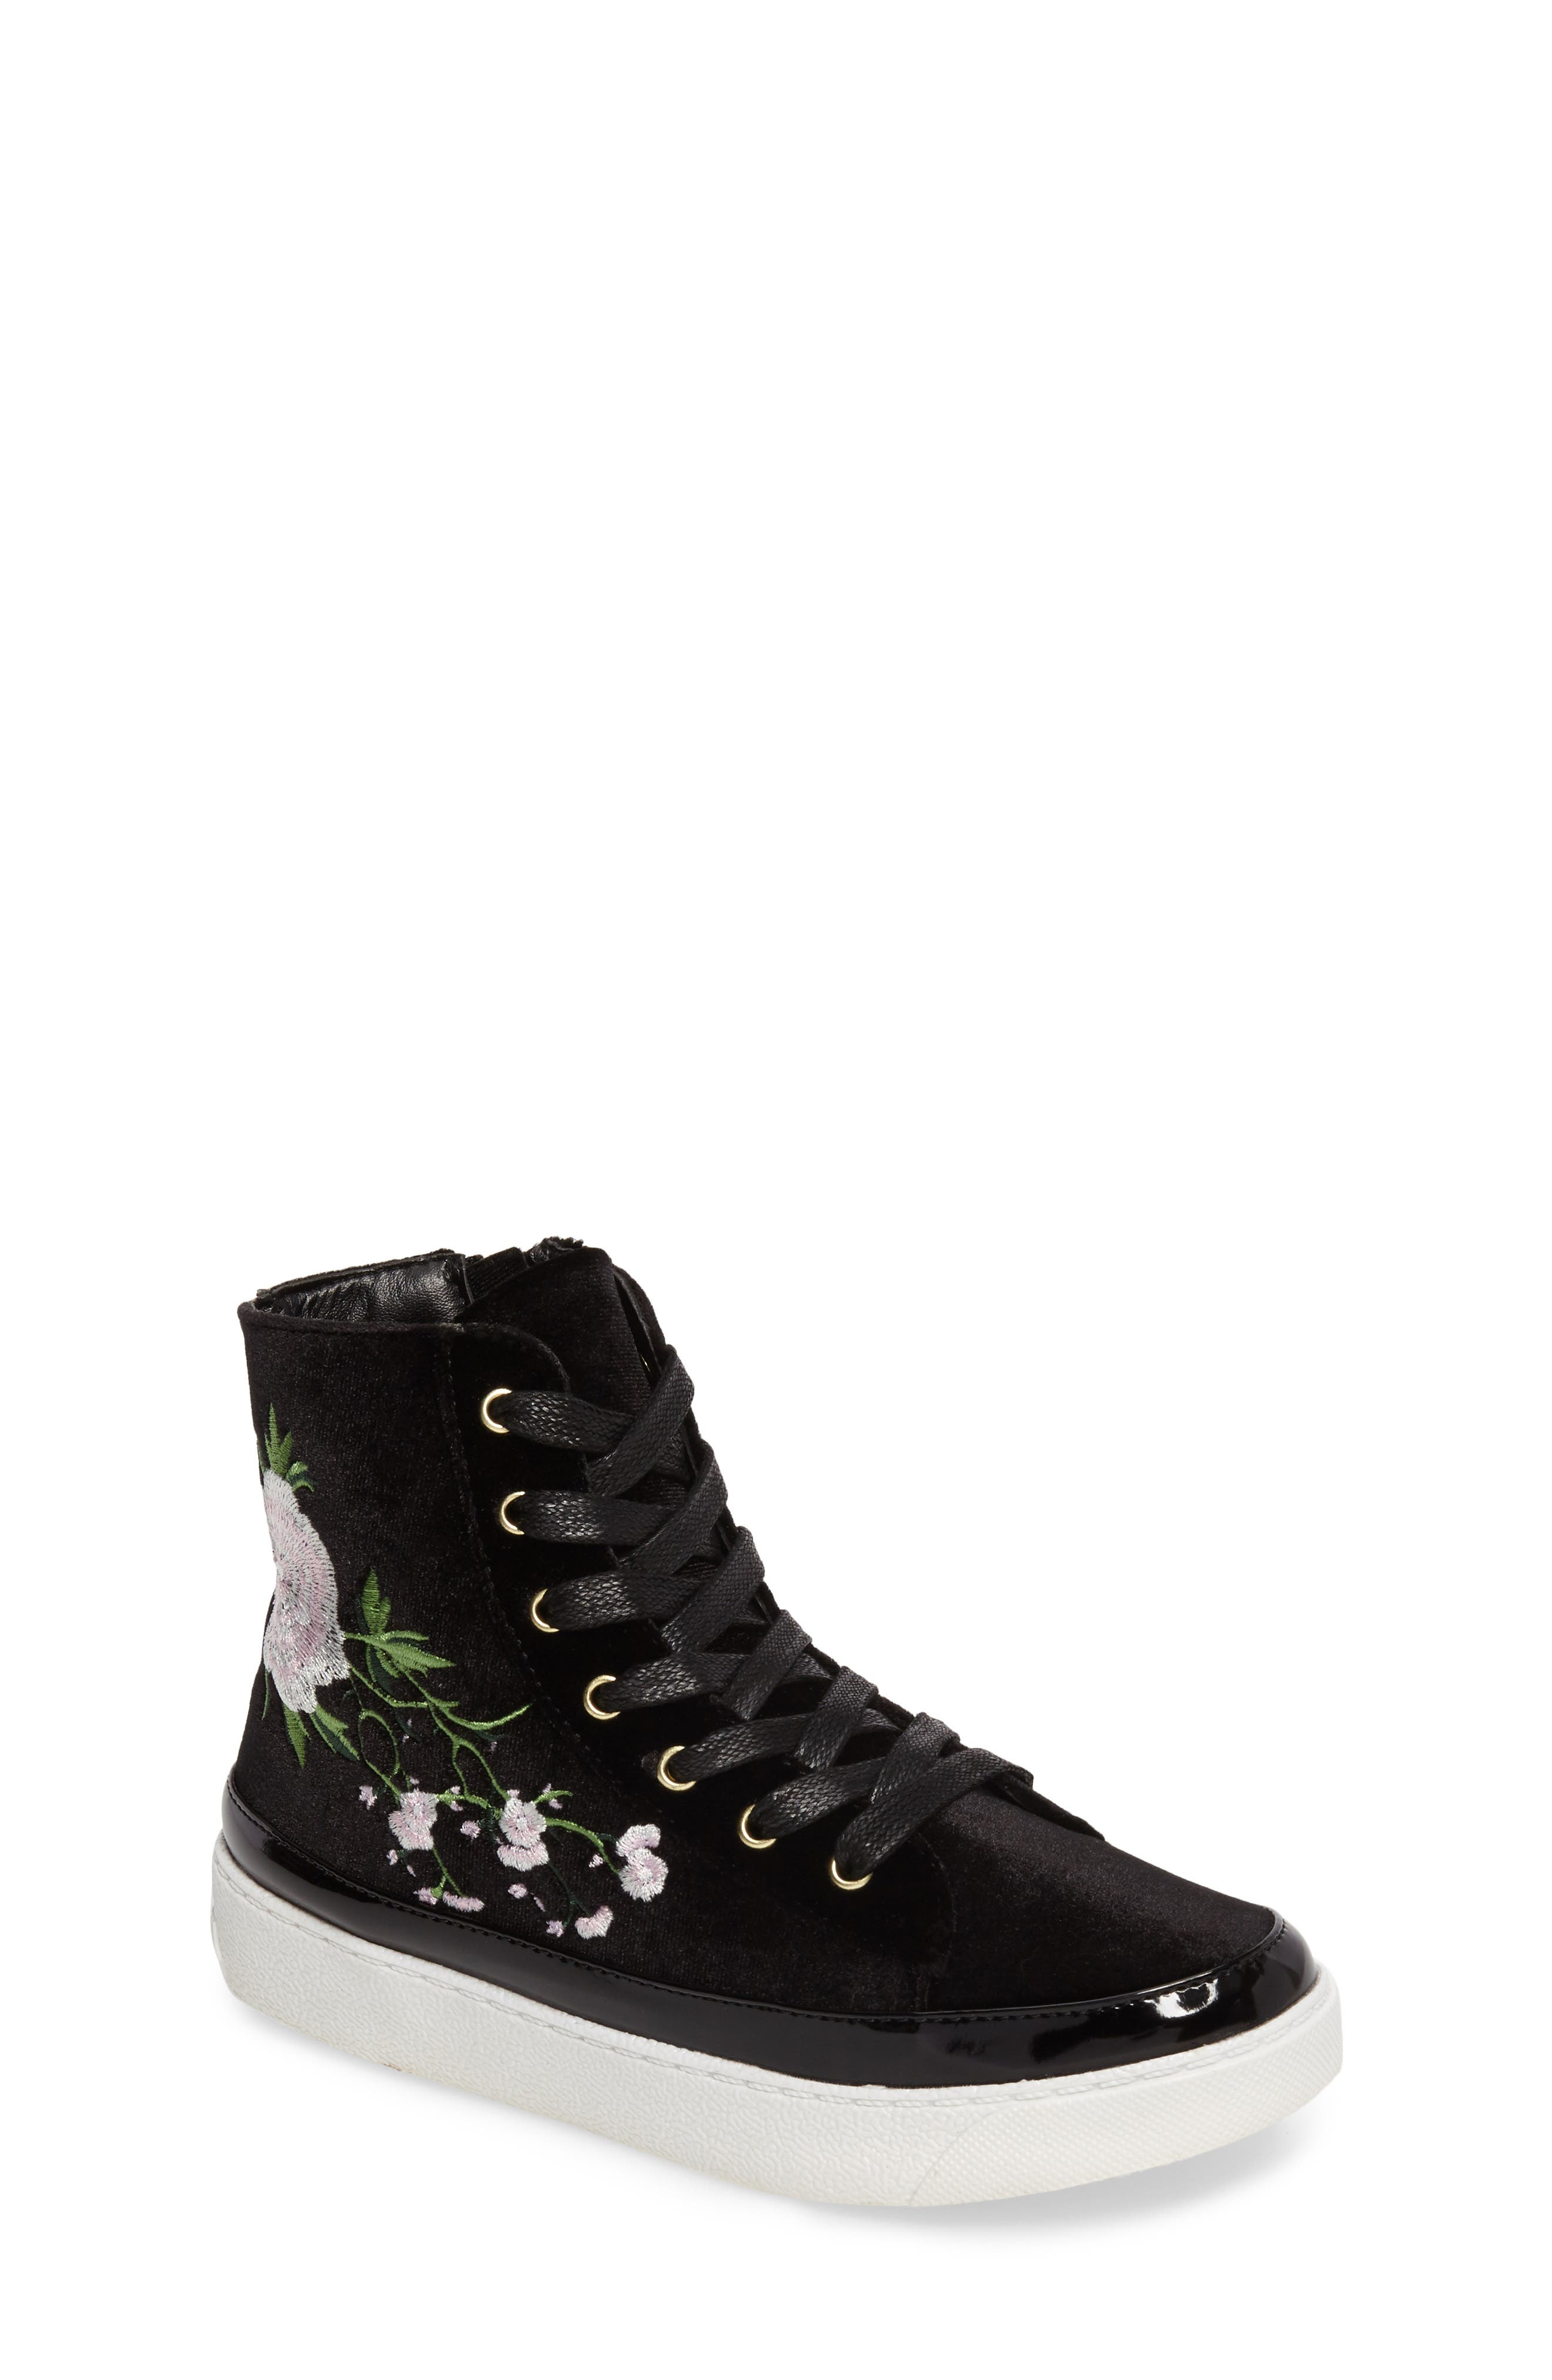 Sam Edelman Harriet Danielle Embroidered High Top Sneaker (Toddler, Little Kid & Big Kid)